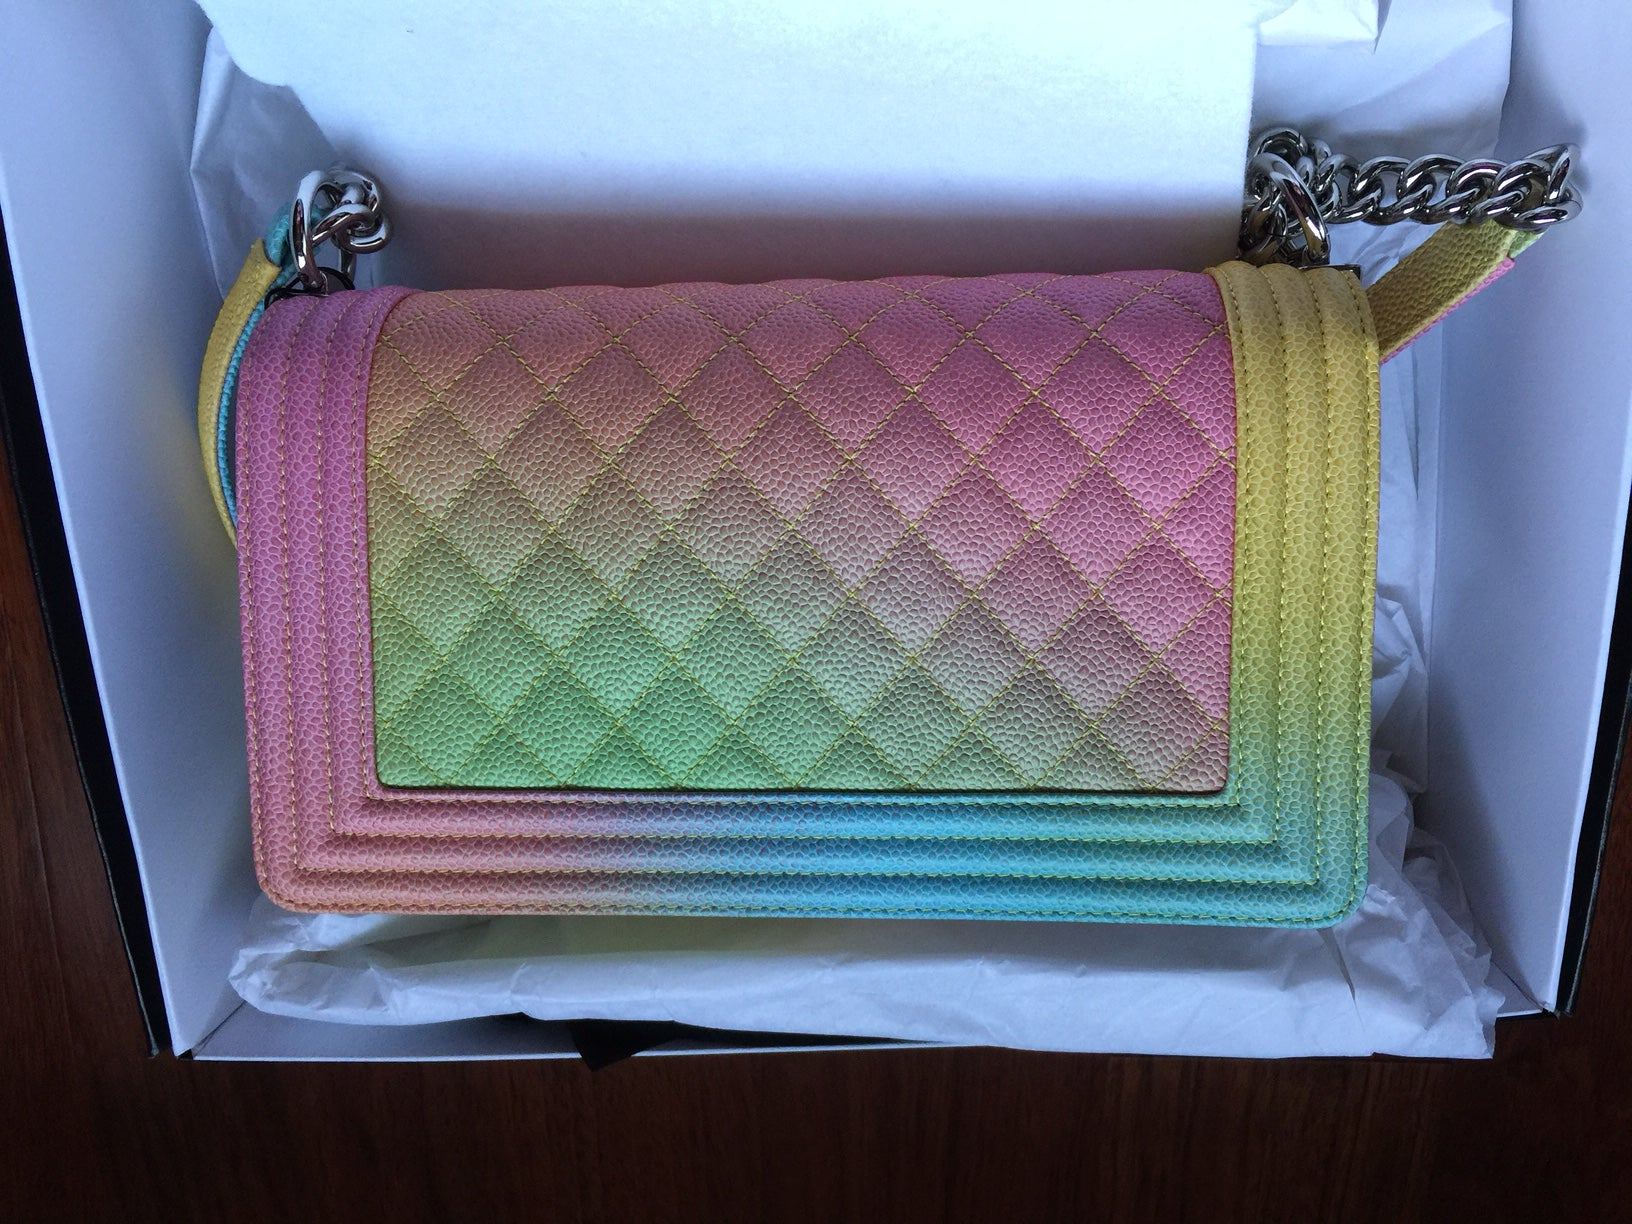 db65fd91f1542b Chanel Rainbow Chanel Boy Handbag Medium '17 Crossbody NEW Sold Out For Sale  at 1stdibs